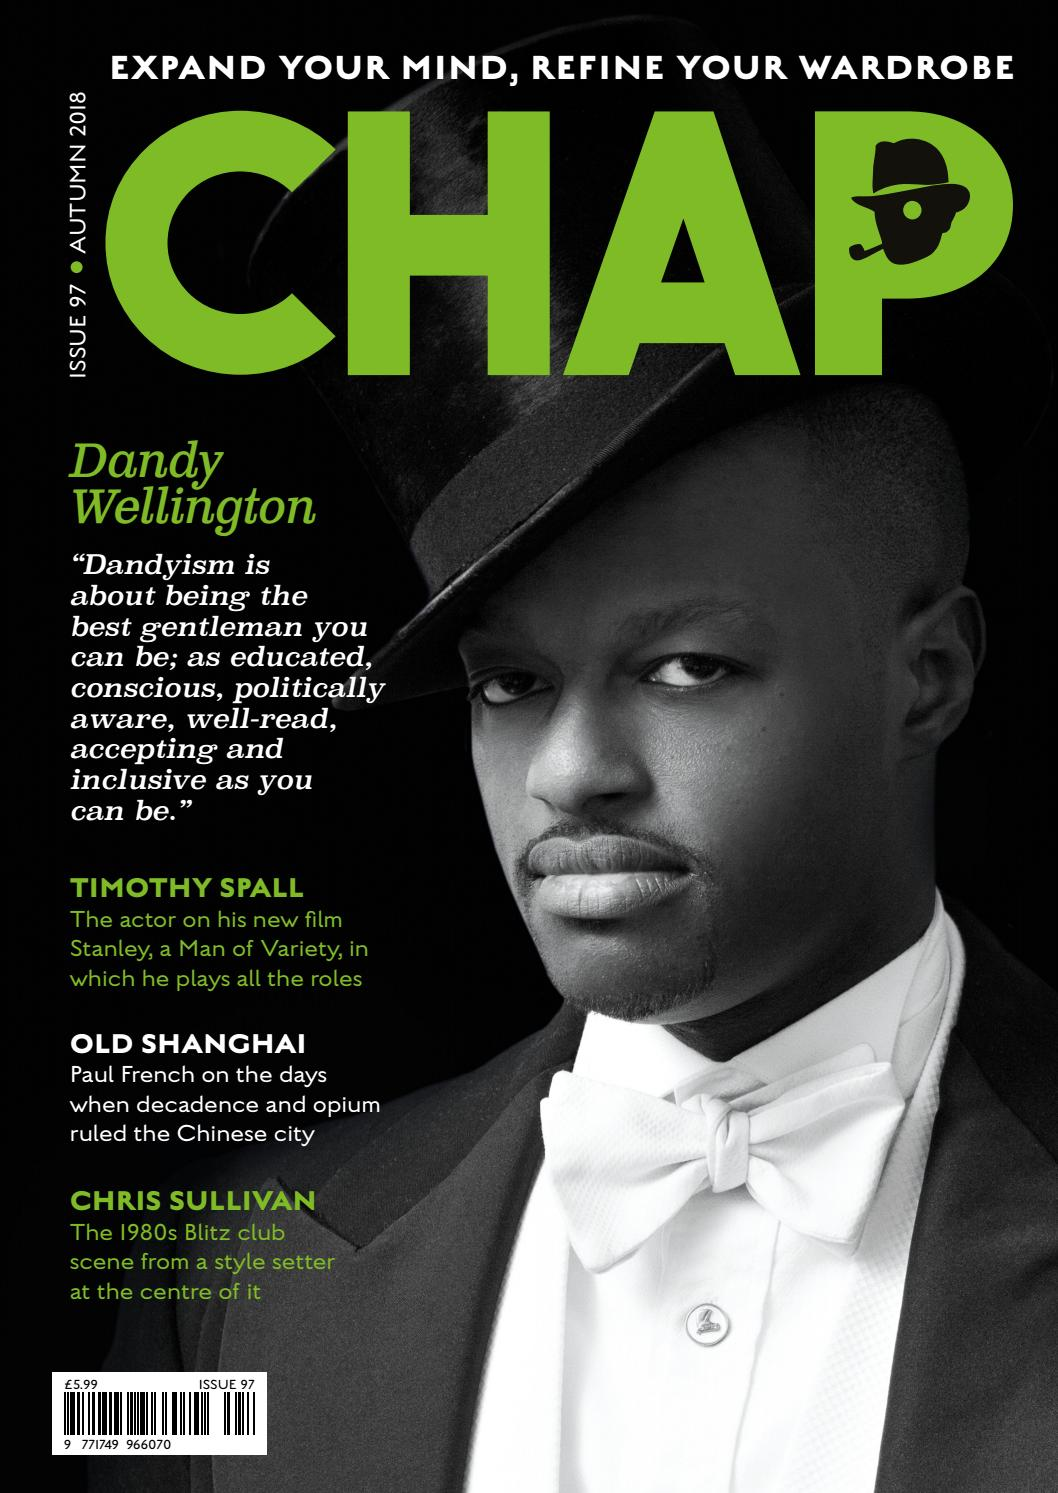 558ba6df17a9 The Chap Issue 97 by thechap - issuu